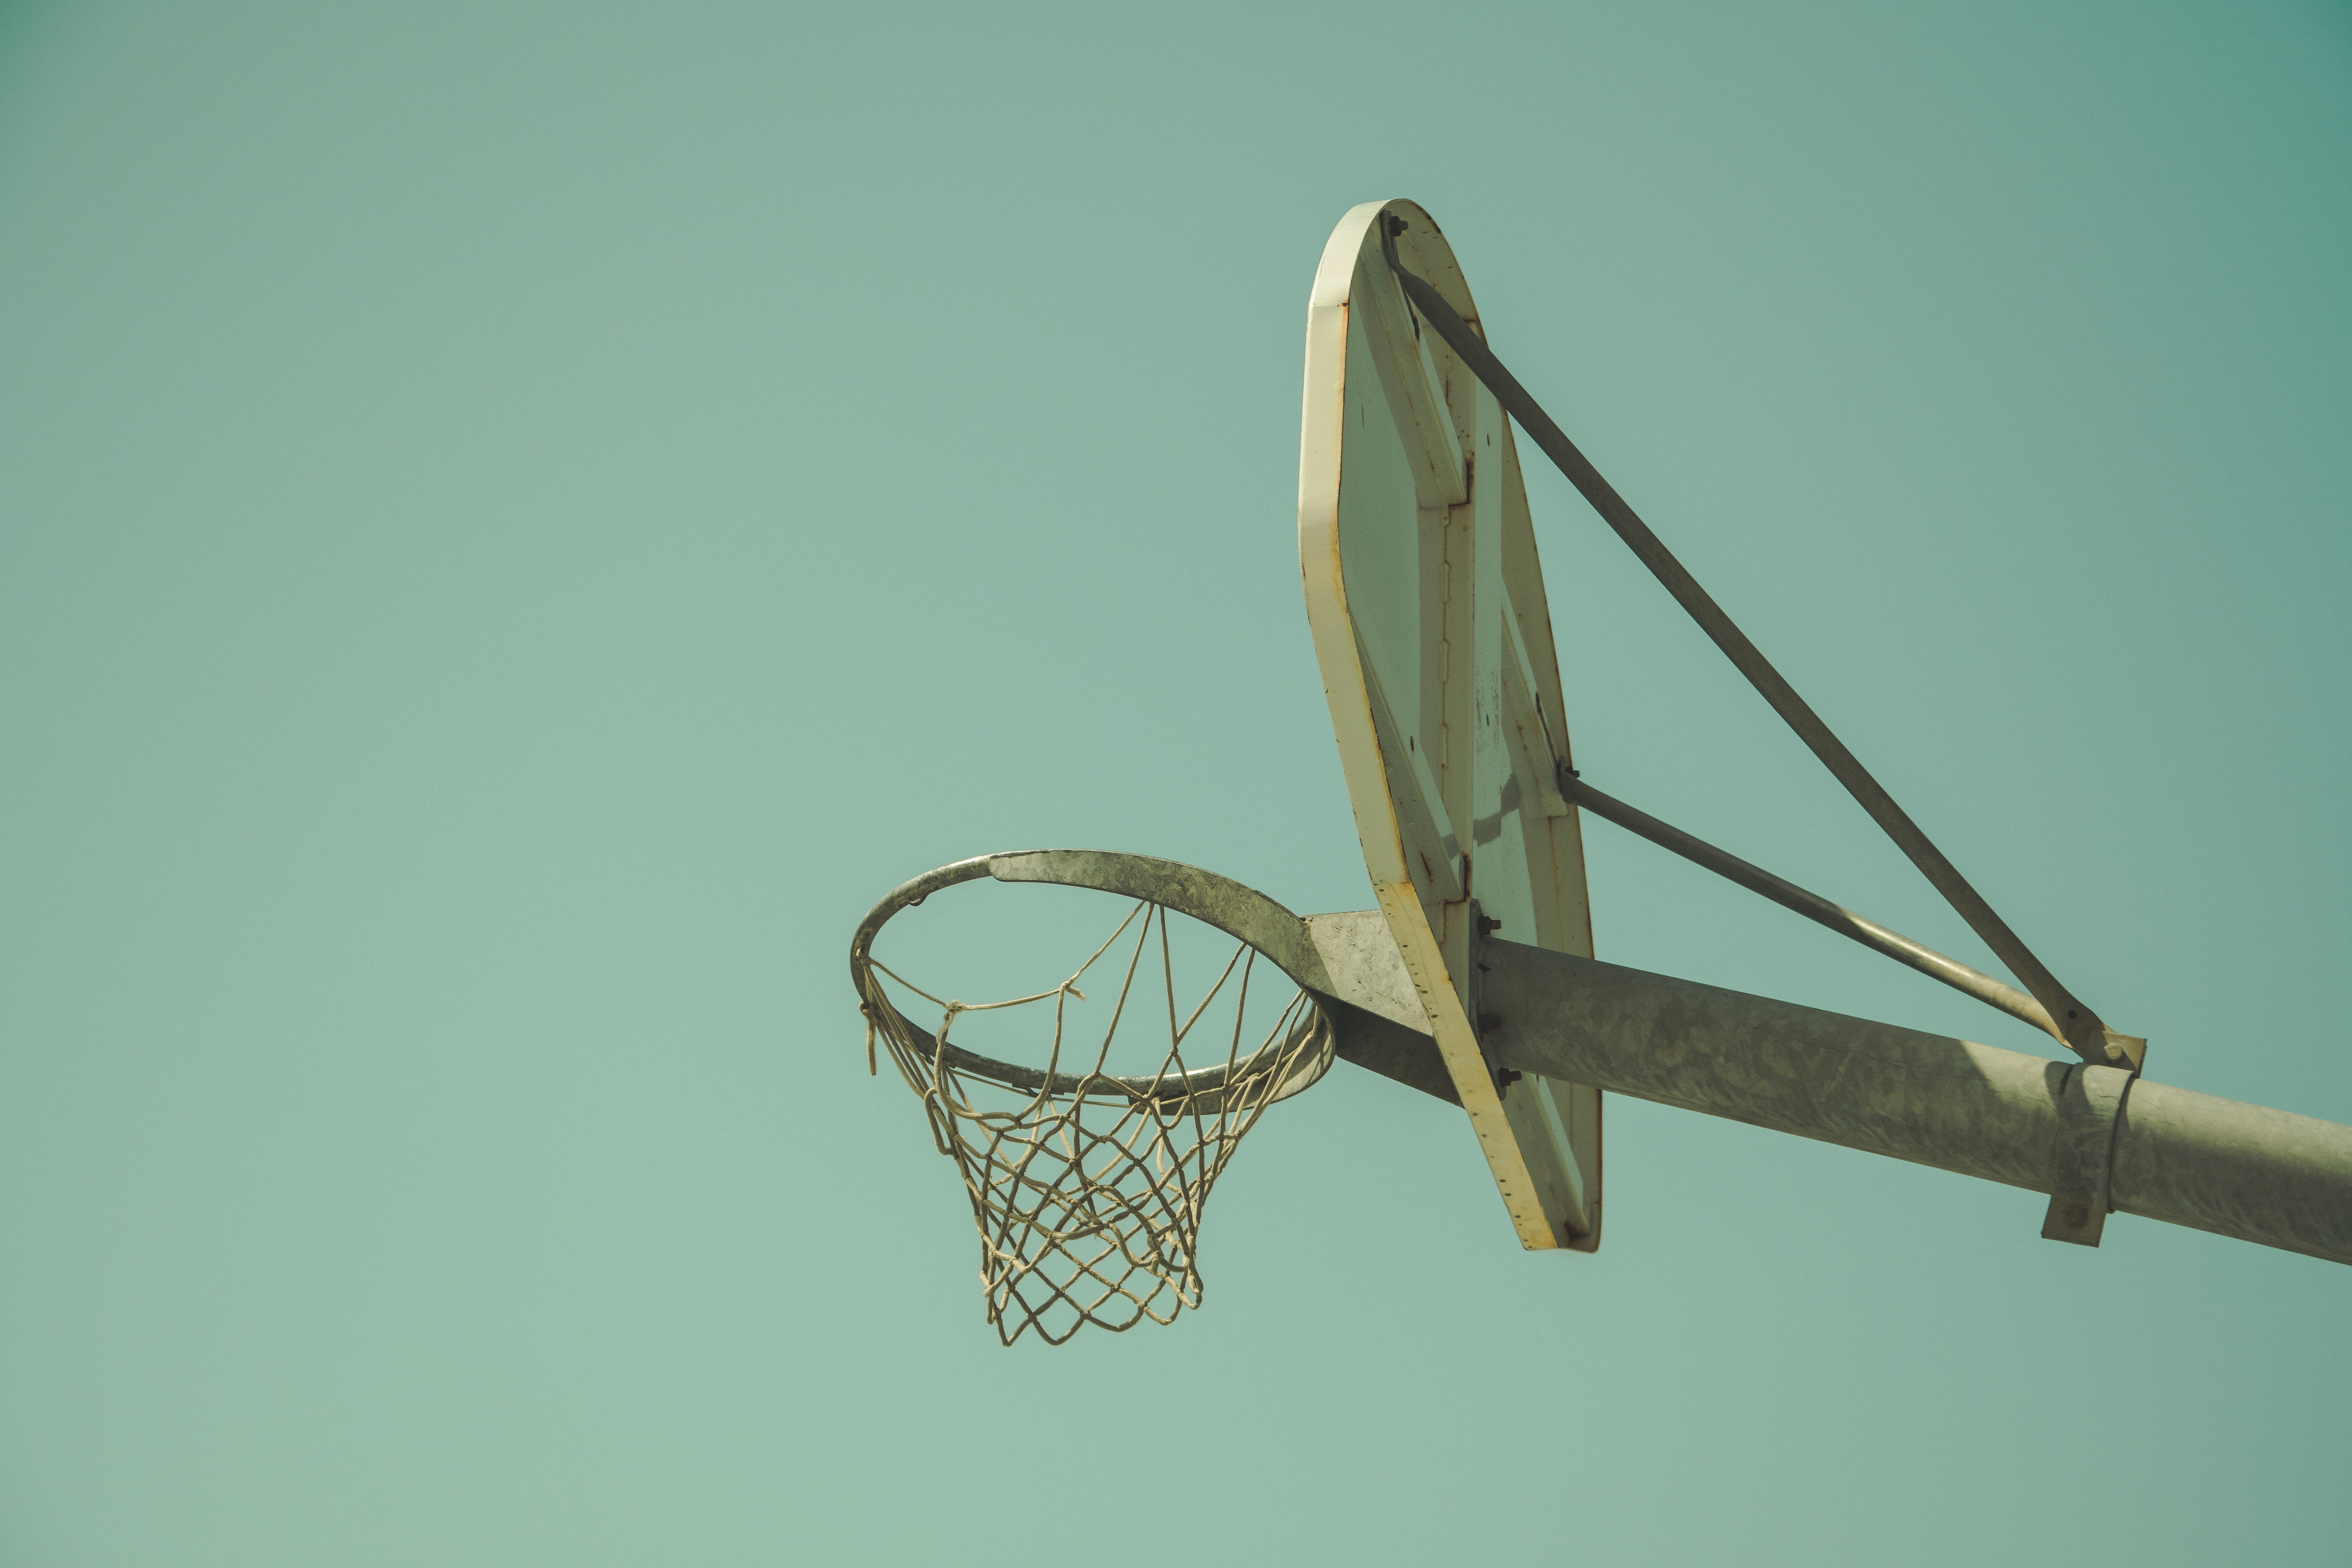 low angled photography of beige basketball hoop